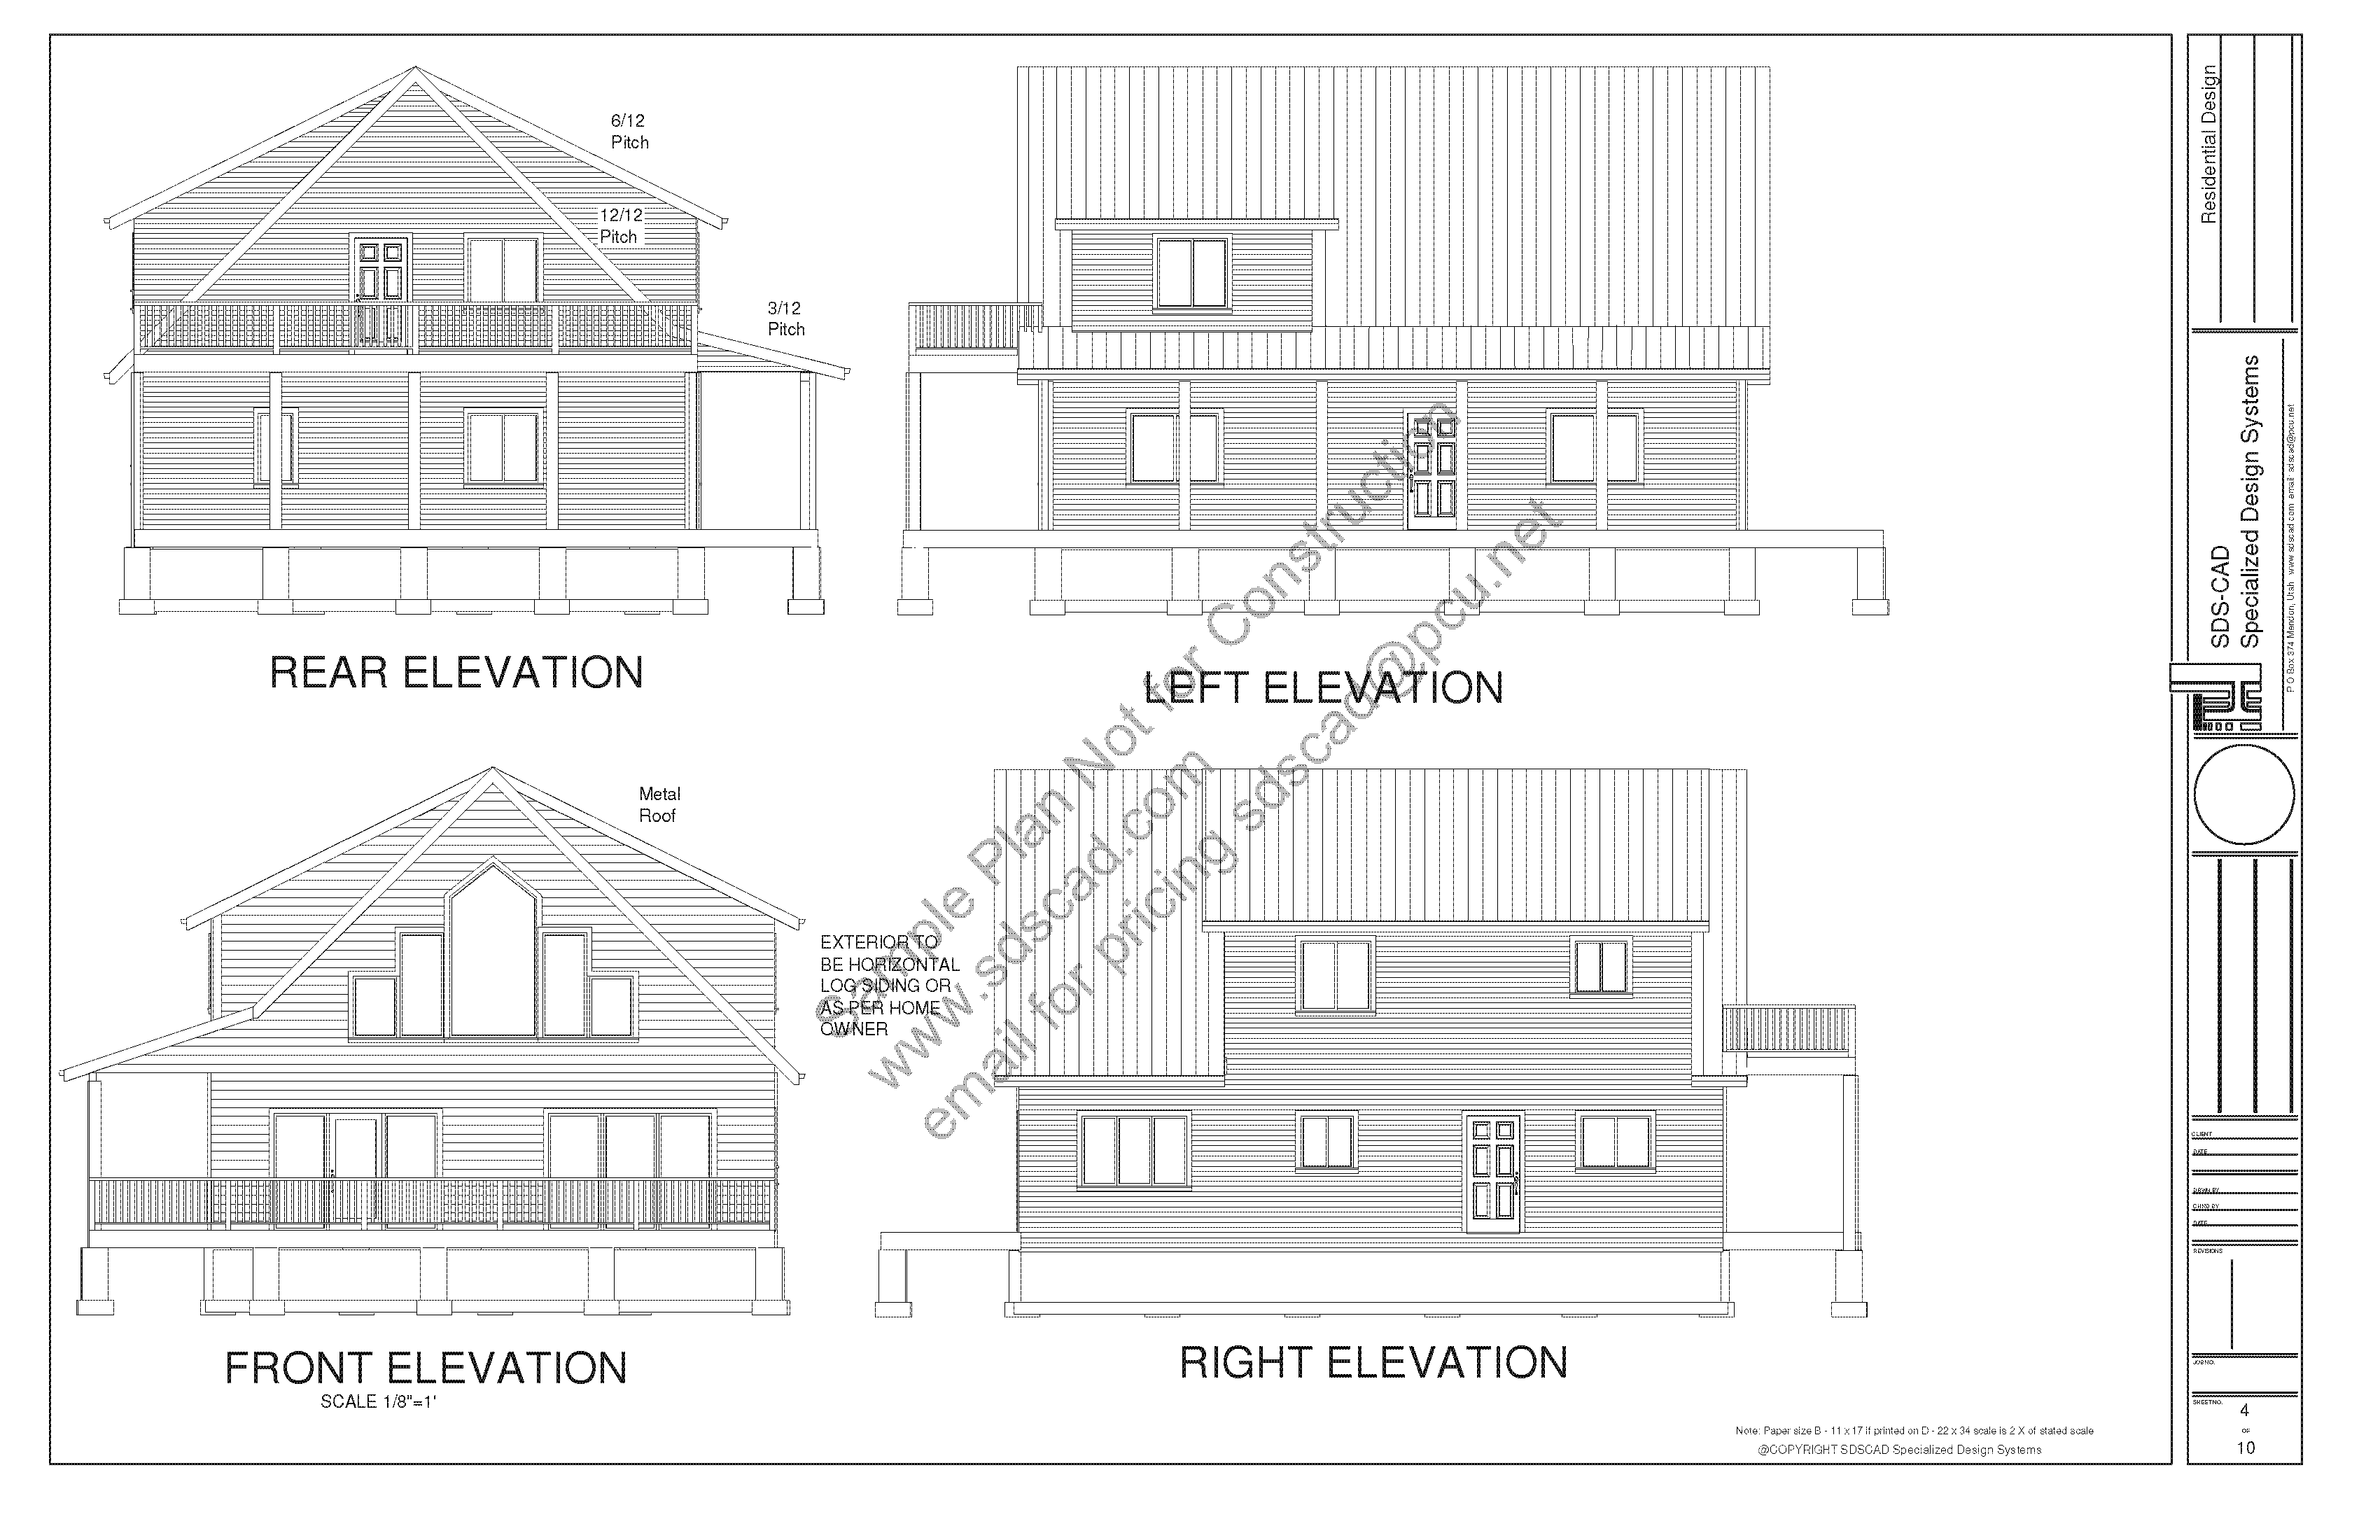 600 800 sq ft house plans 600 sq ft cabin plans with loft 800 sq ft house plans with loft